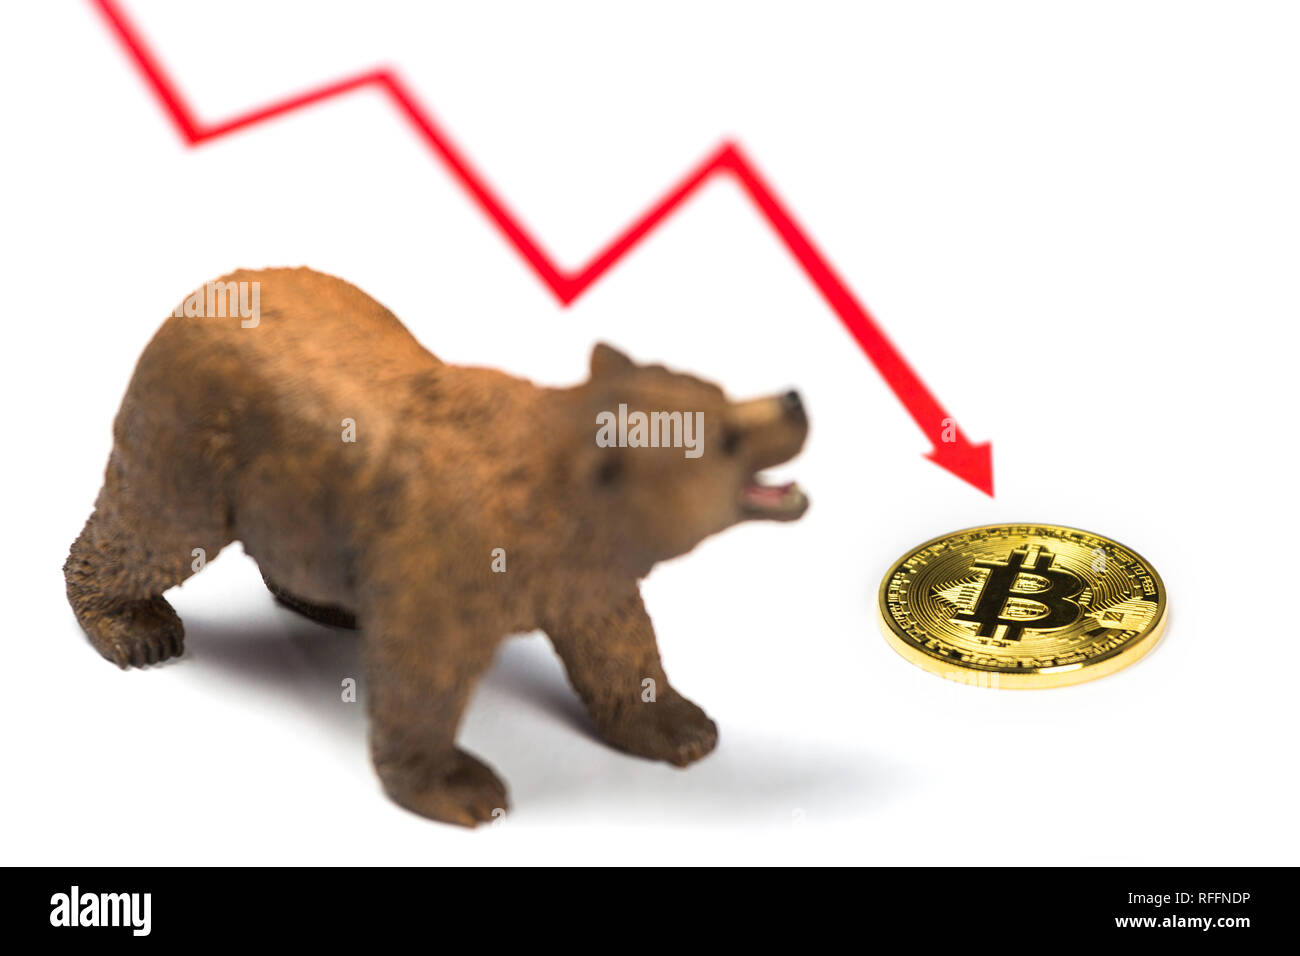 Cryptocurrency Bitcoin price crash and drop as a bear trend concept on a white background - Stock Image